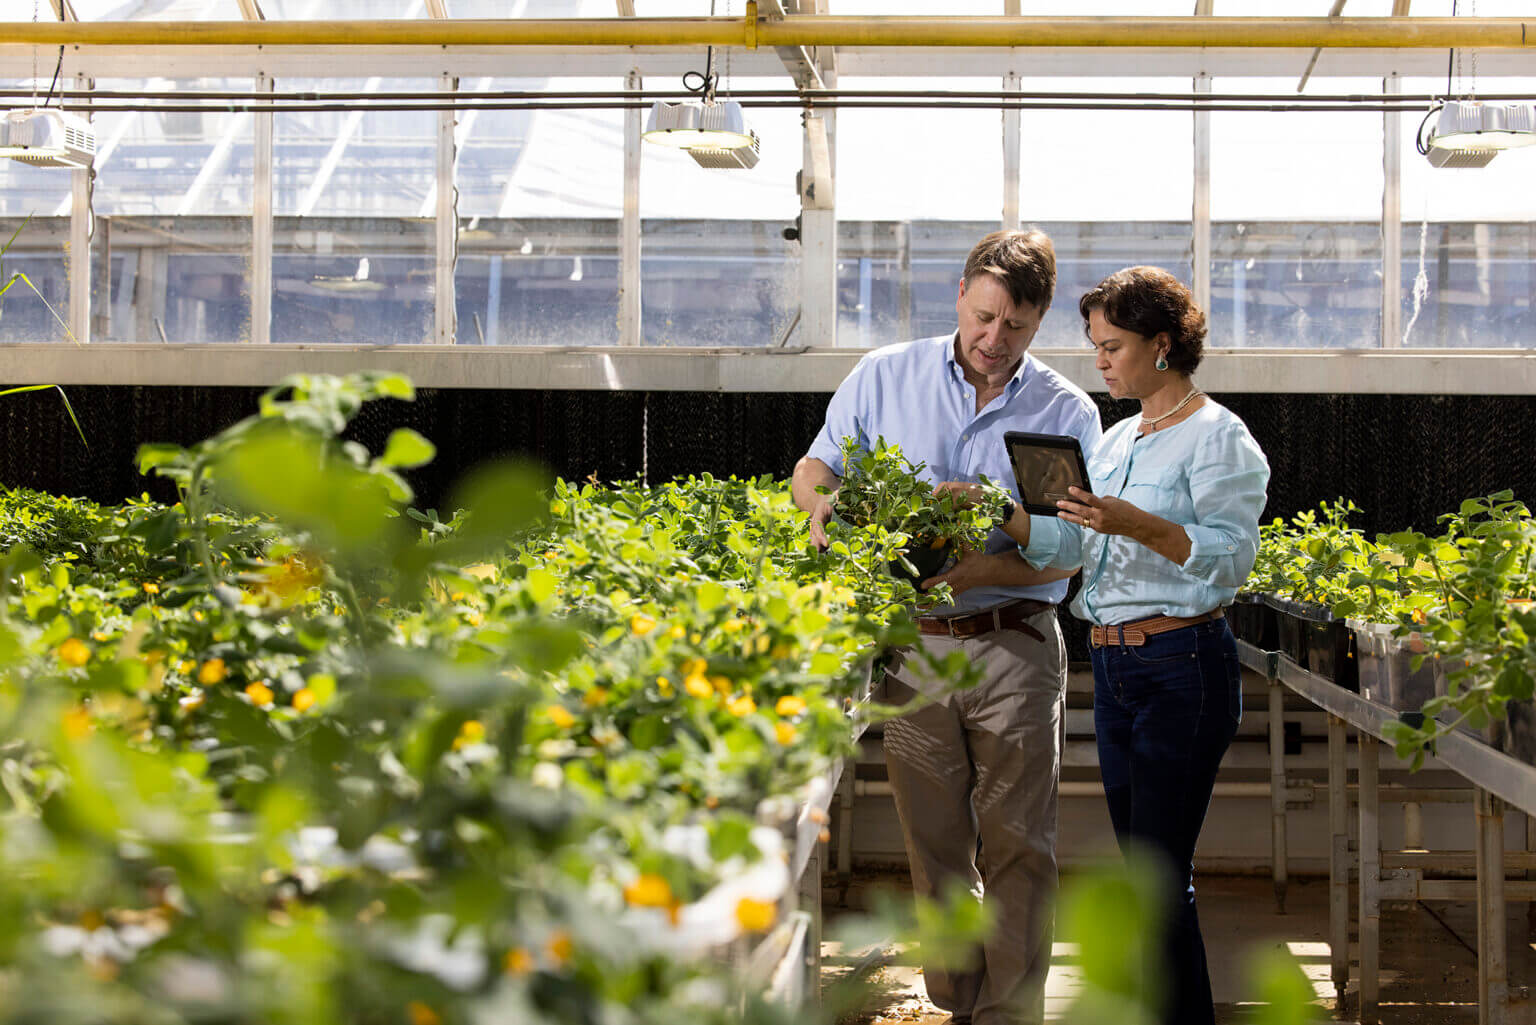 Professor David Bertioli and his wife, Soraya Leal-Bertioli, senior research scientist, work together with peanut plants in their greenhouses at the Center for Applied Genetic Technologies. (Photo by Andrew Davis Tucker/UGA)